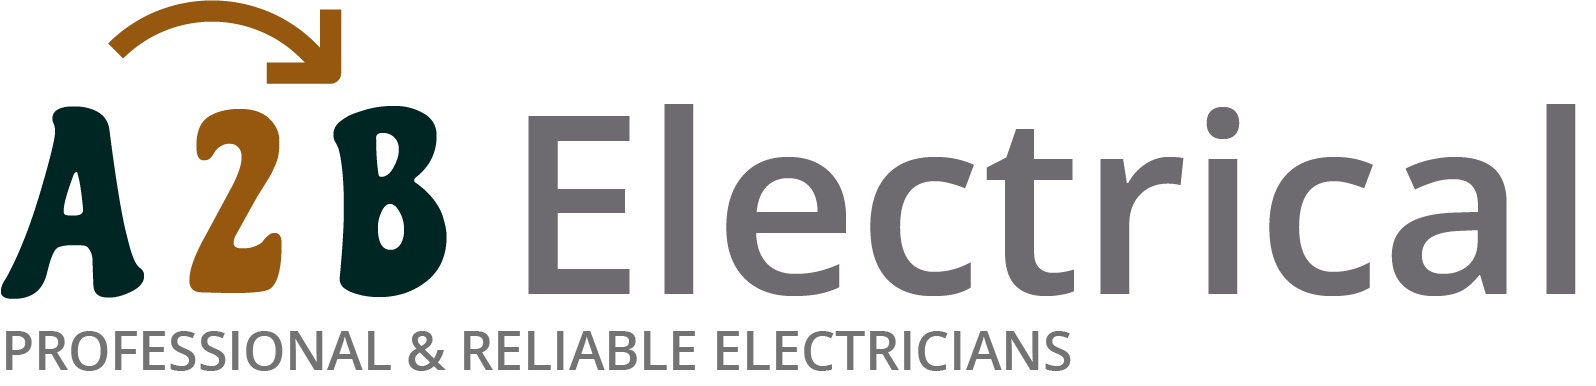 If you have electrical wiring problems in Neasden, we can provide an electrician to have a look for you.